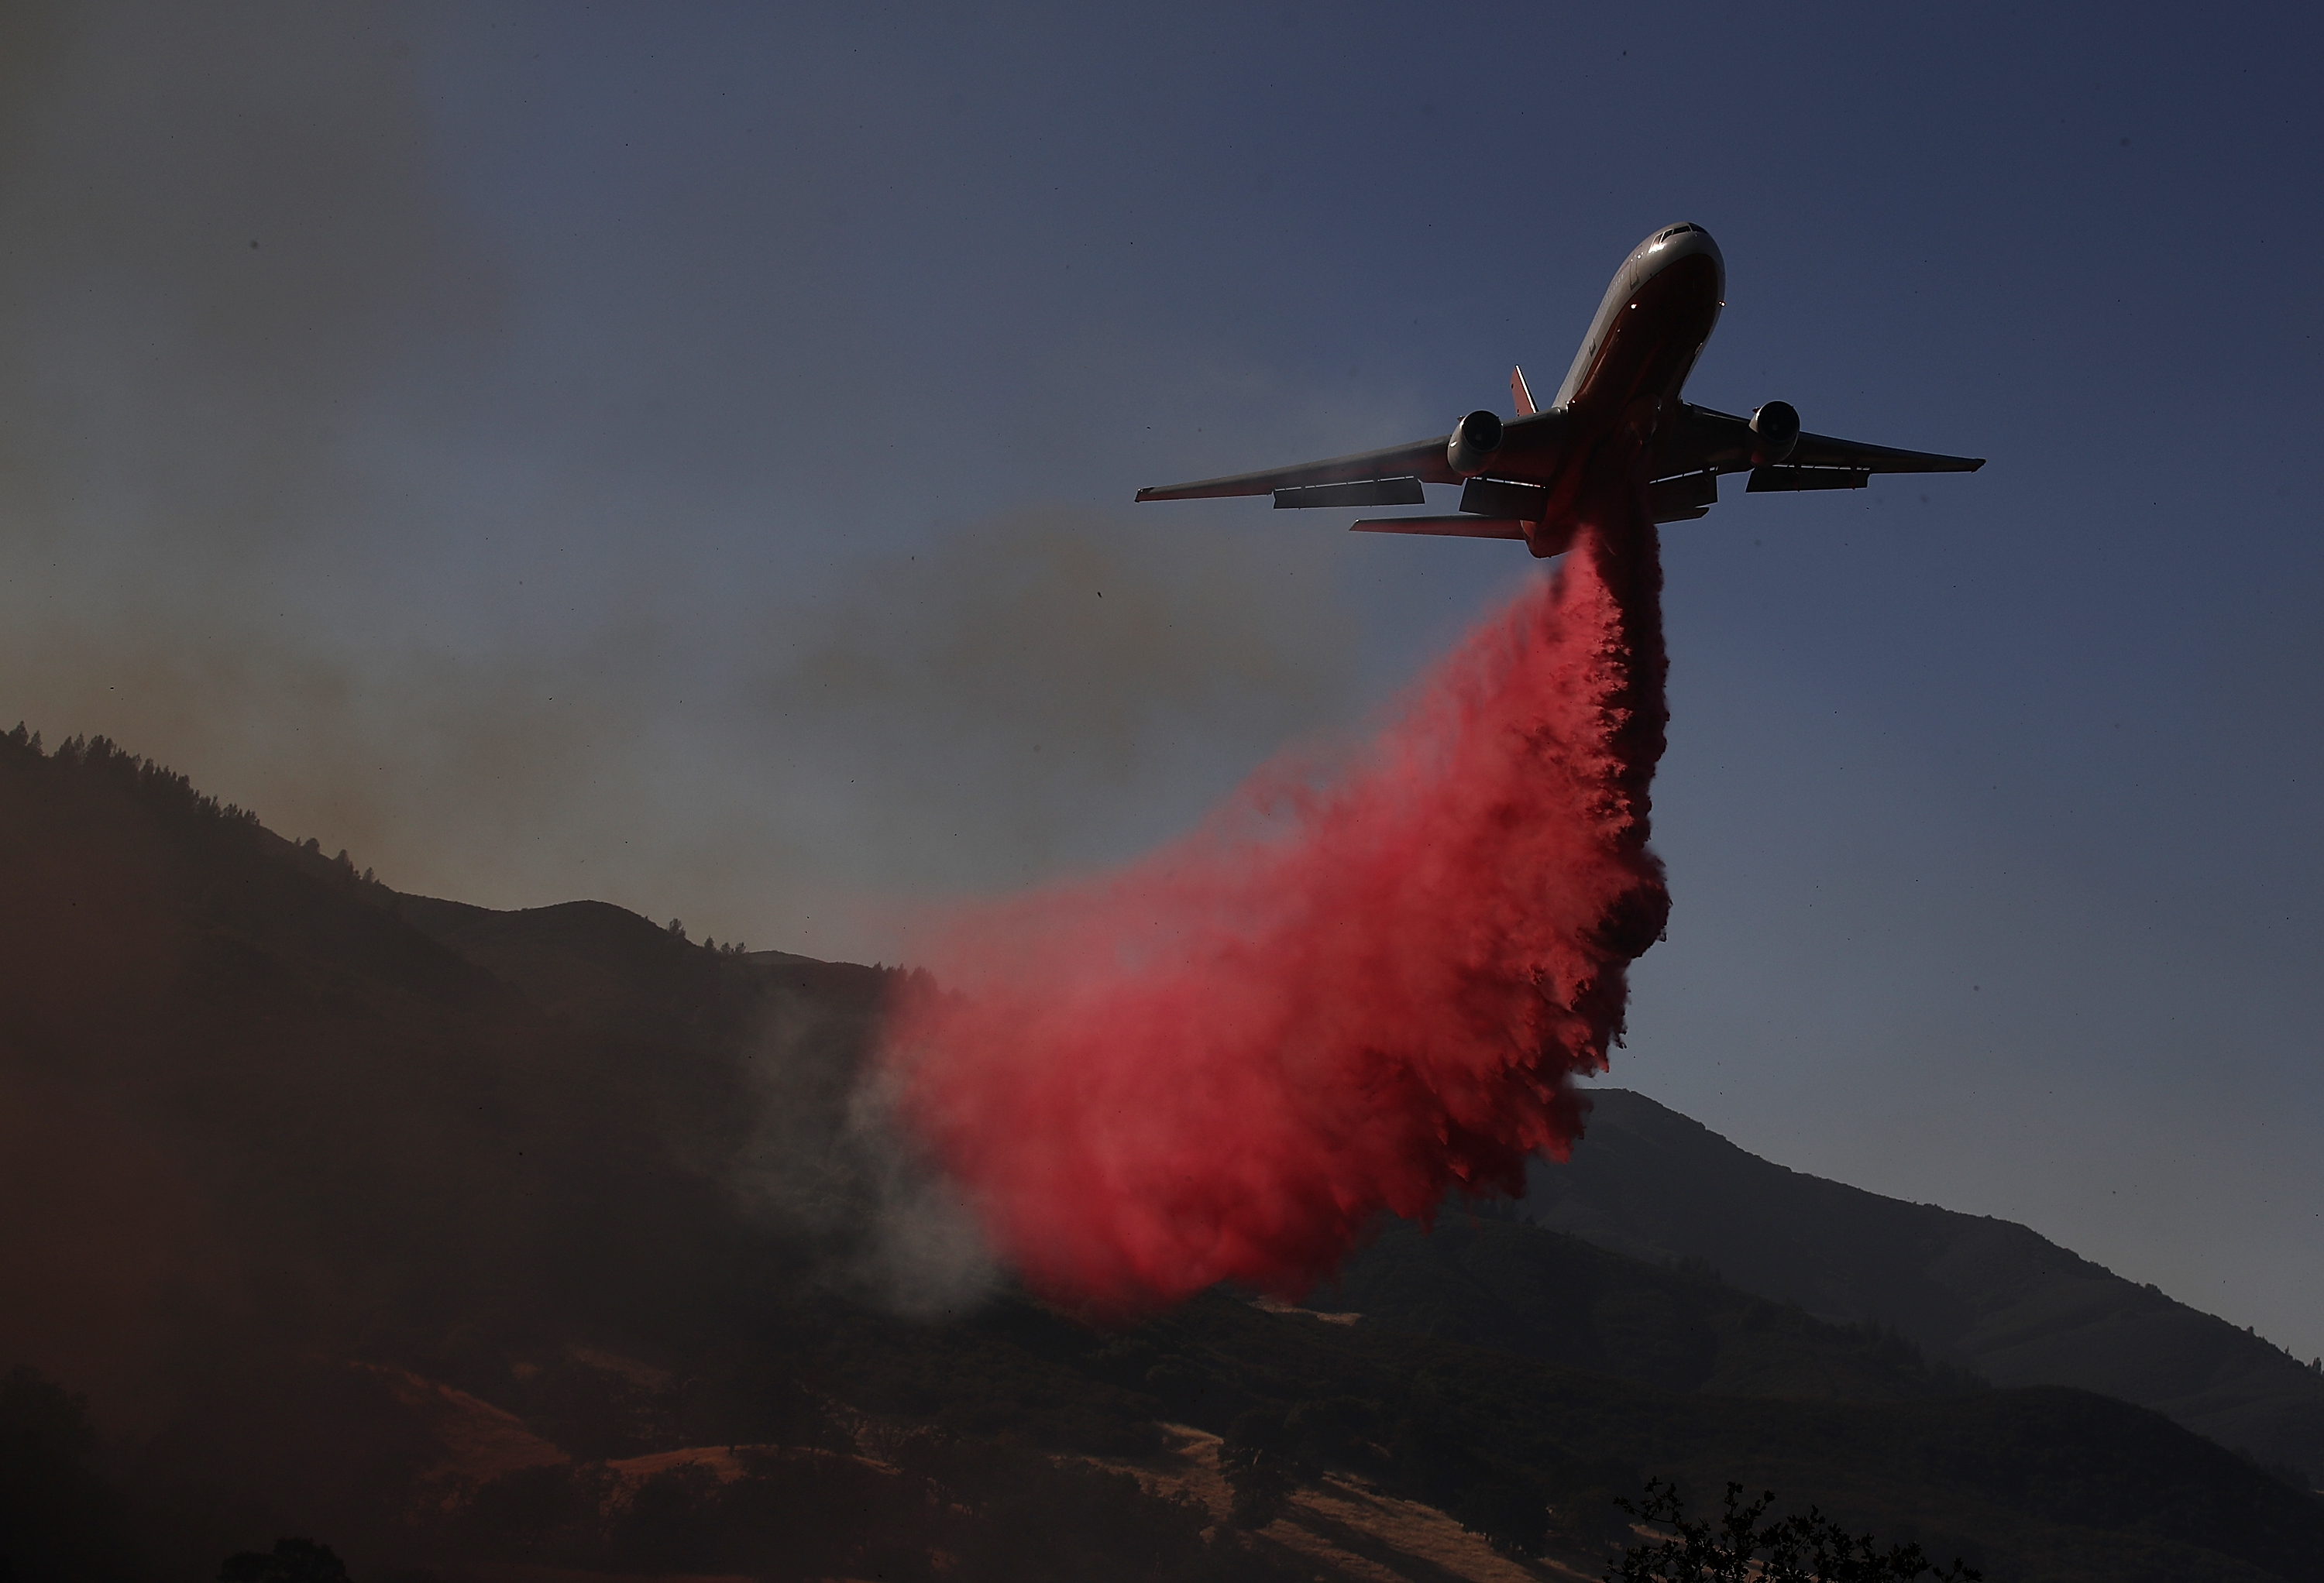 Mendocino Complex fire map  Now bigger than Carr Fire LAKEPORT  CA   AUGUST 01  A firefighting aircraft drops fire retardant  ahead of the River Fire as it burns through a canyon on August 1  2018 in  Lakeport